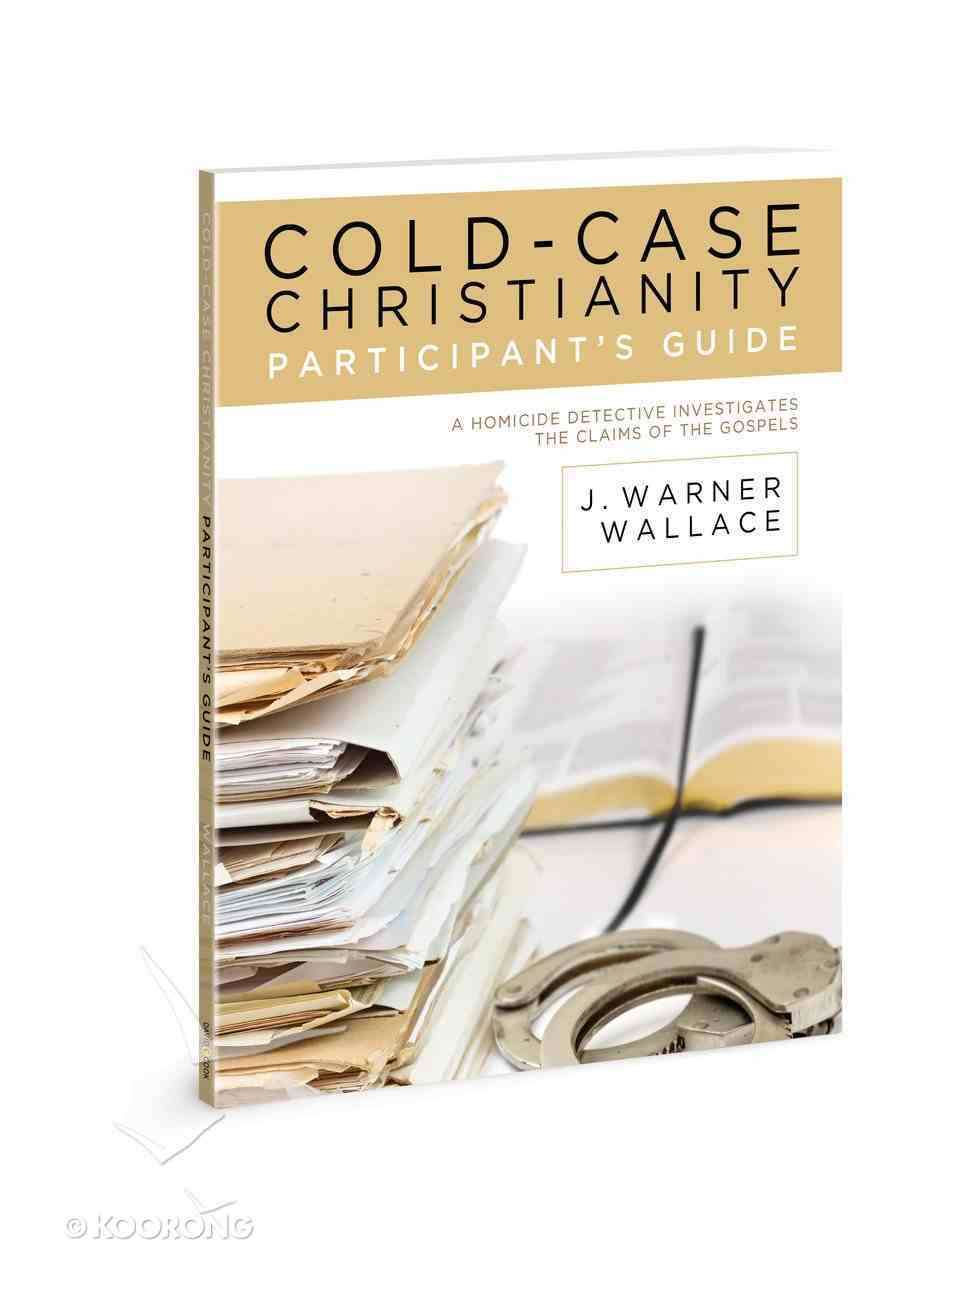 Cold-Case Christianity: A Homicide Detective Investigates the Claims of the Gospels (Participant Guide) Paperback